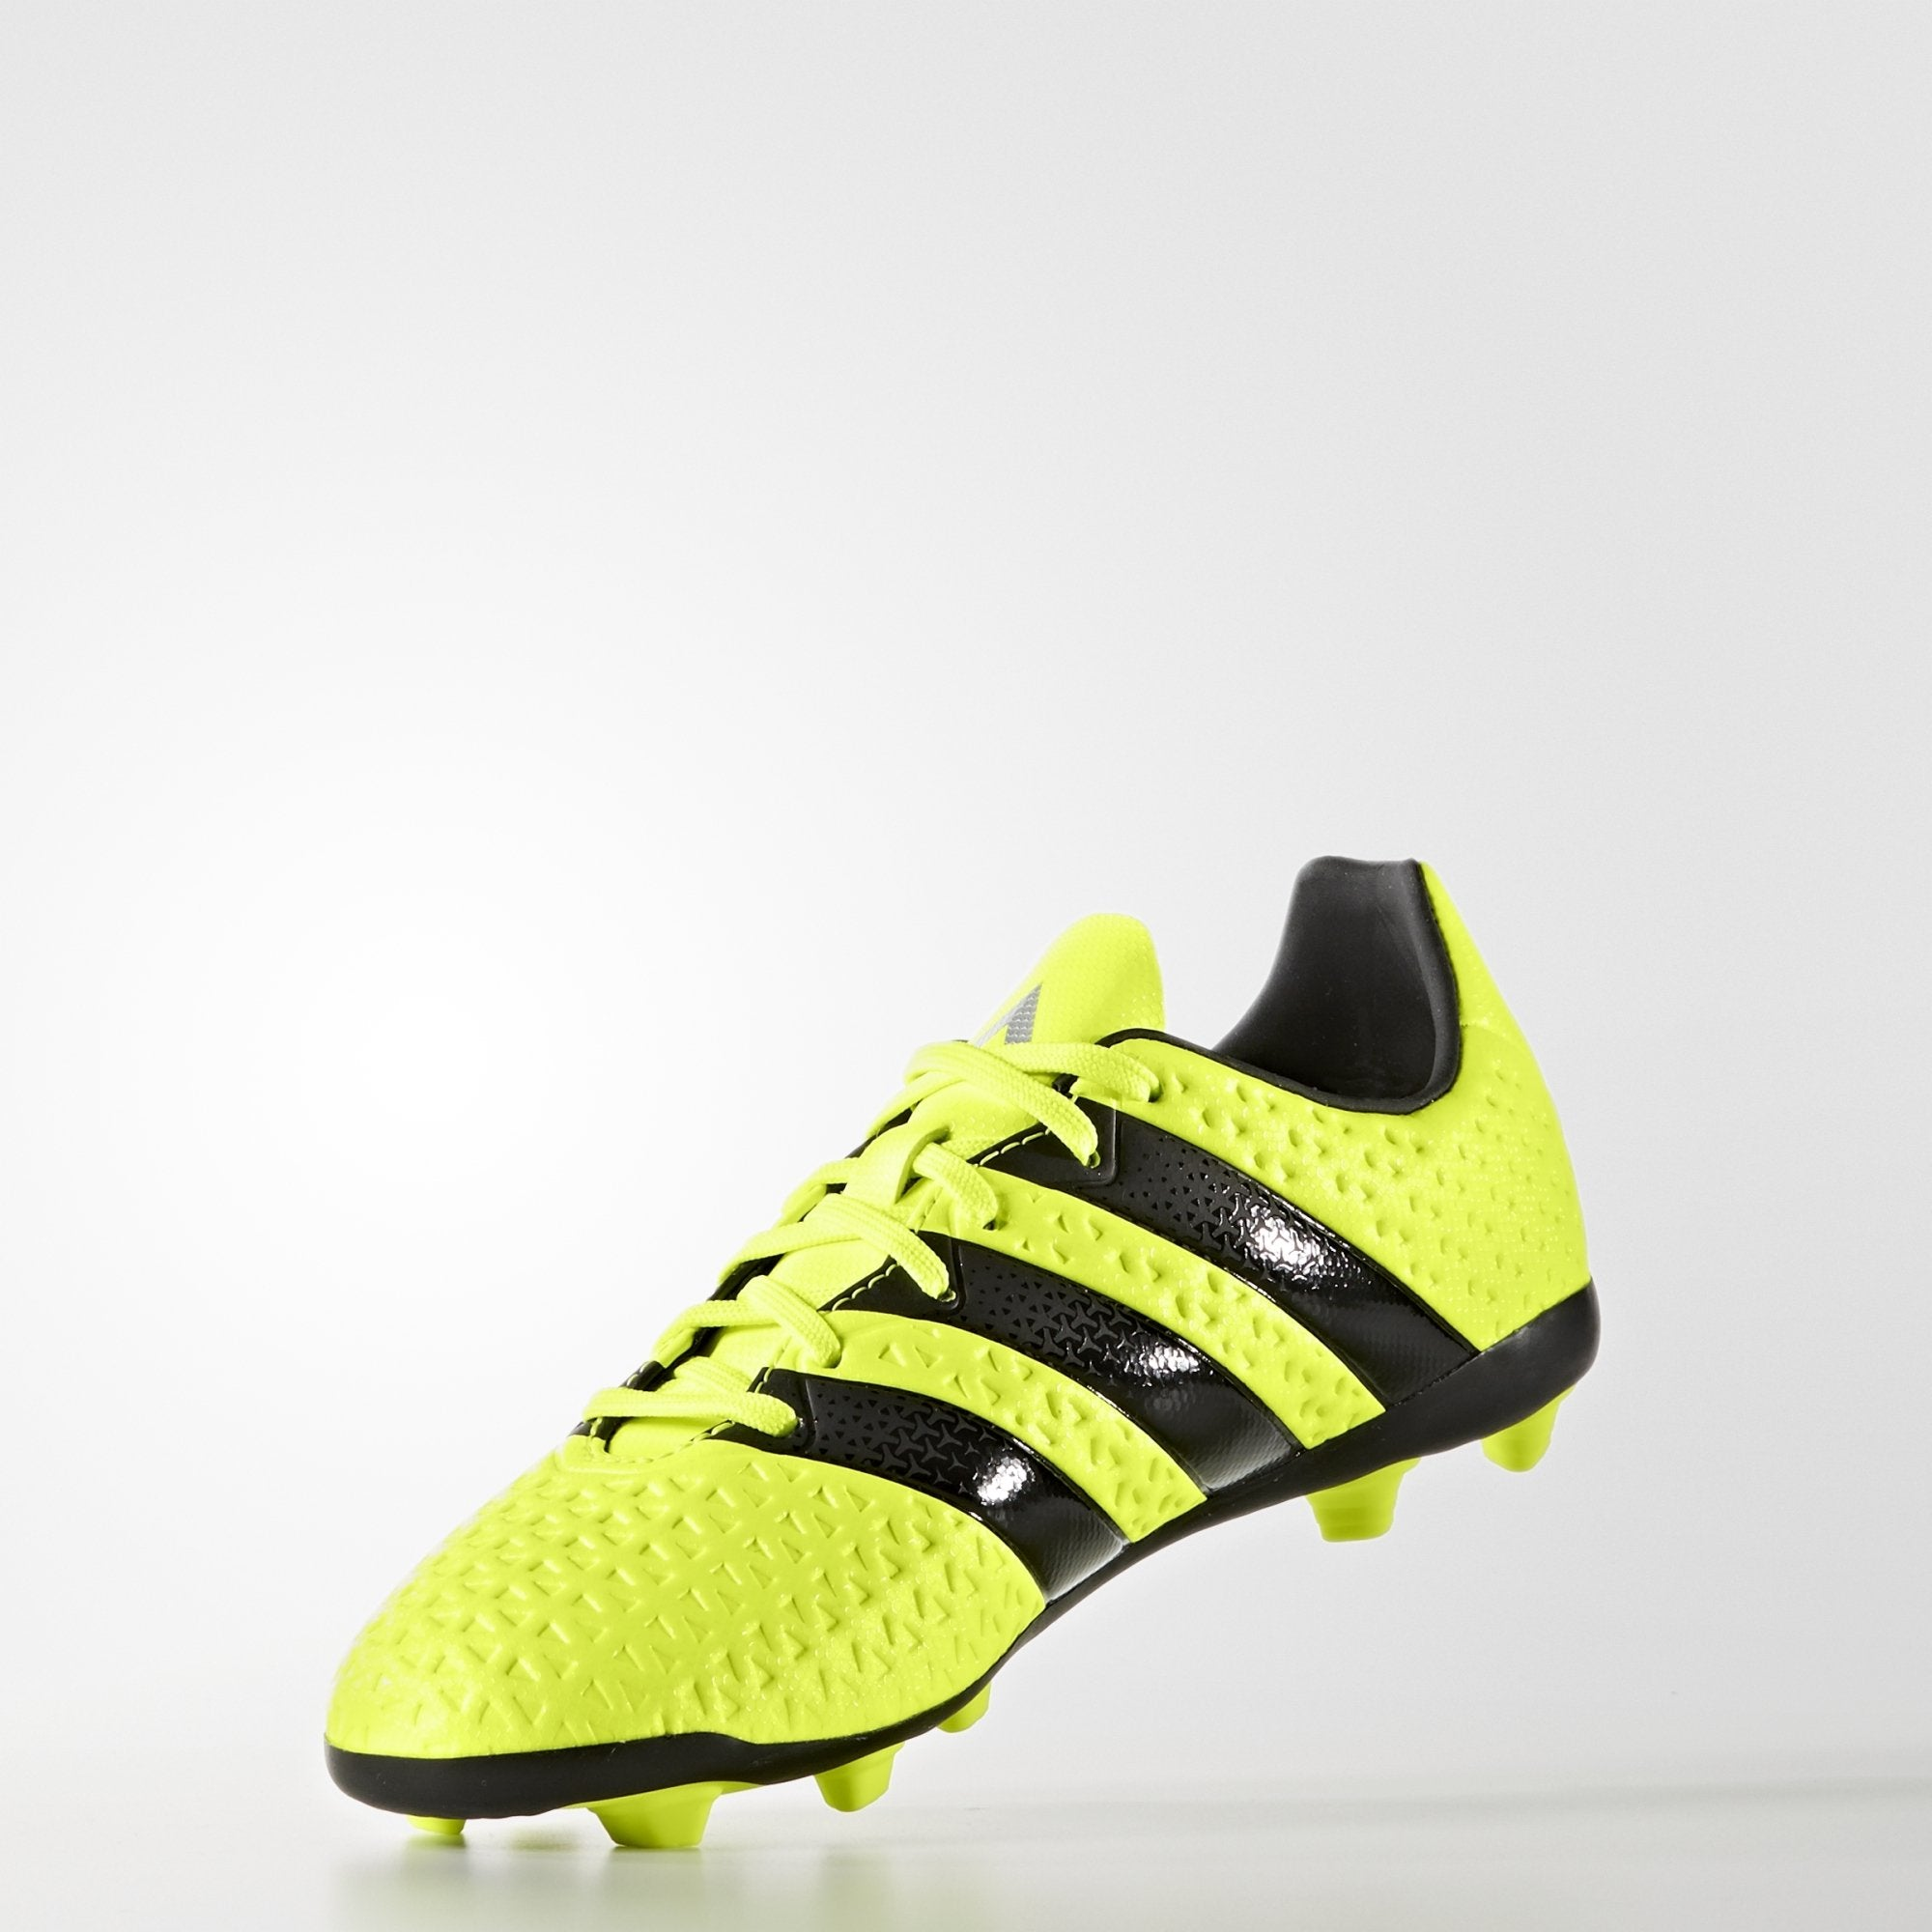 01d67d1c801844 low price adidas ace 16.4 tf shoes 9bce7 c1cd3; official store adidas ace  16.4 flexible ground boots branded feet e9ce7 0ae2b